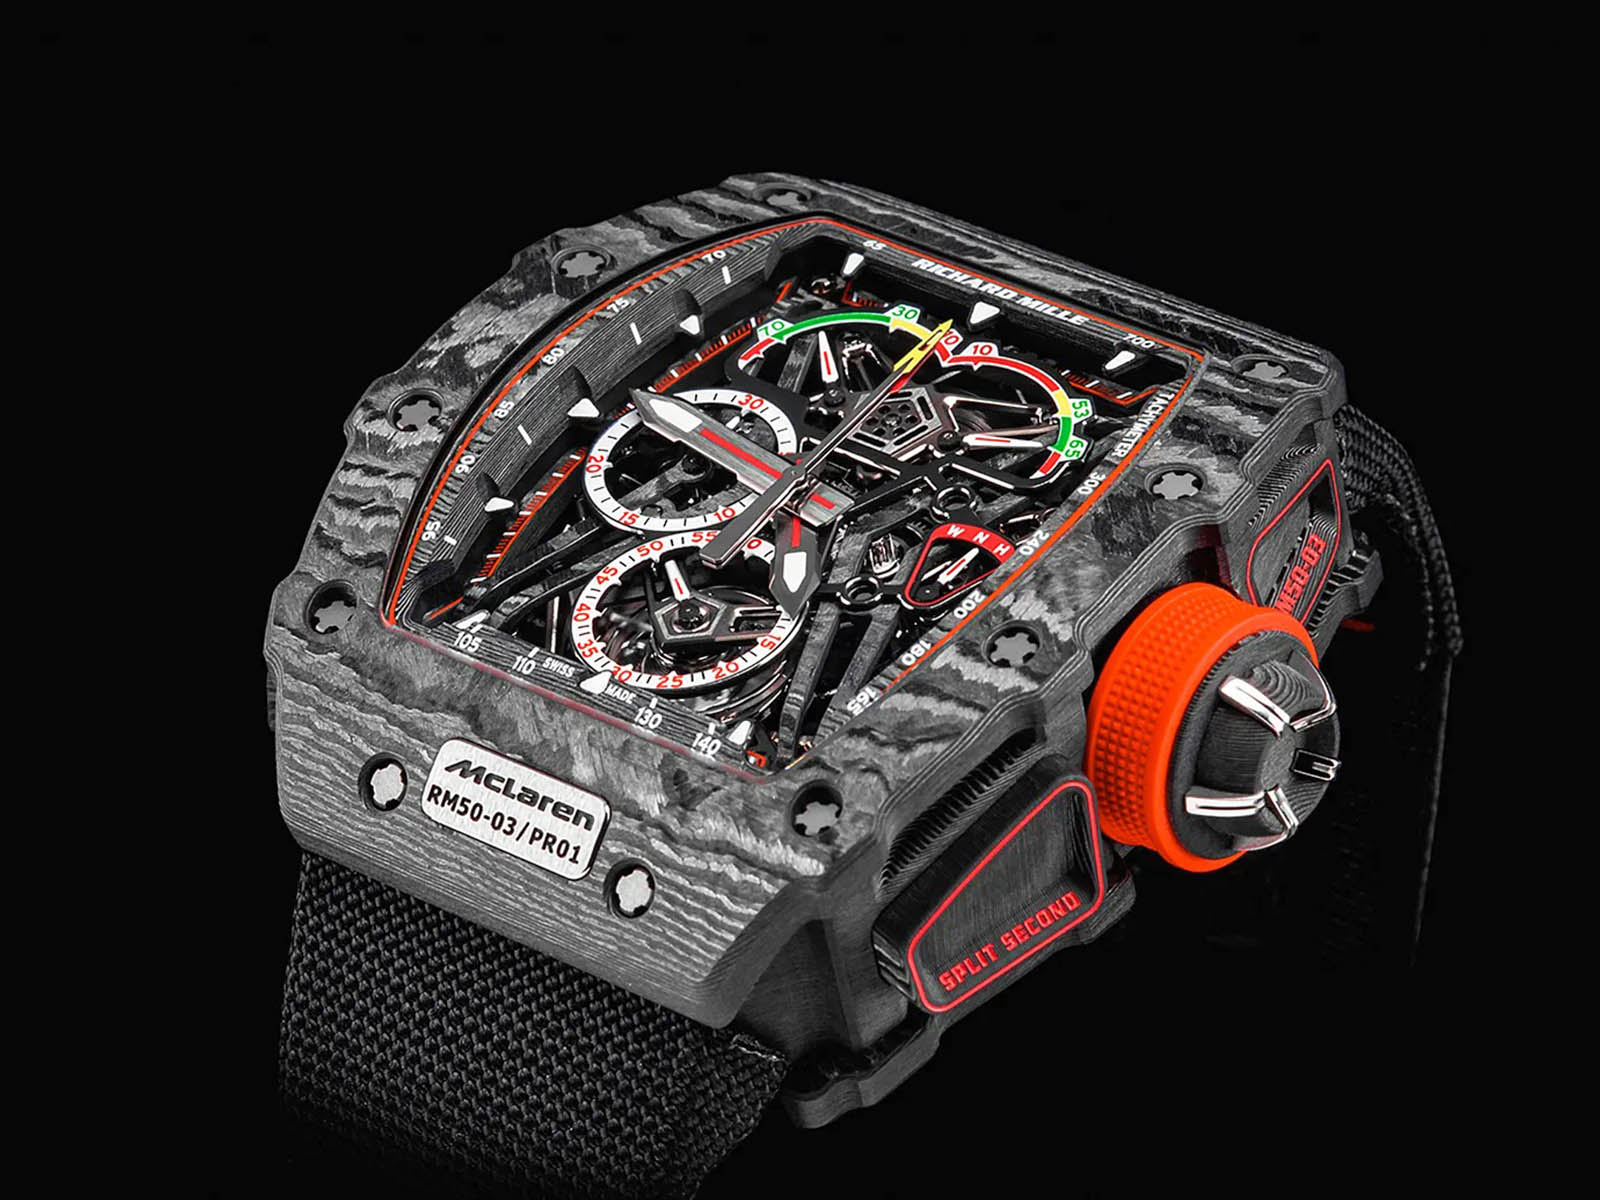 richard-mille-rm-50-03-tourbillon-split-seconds-chronograph-mclaren-f1-1.jpg